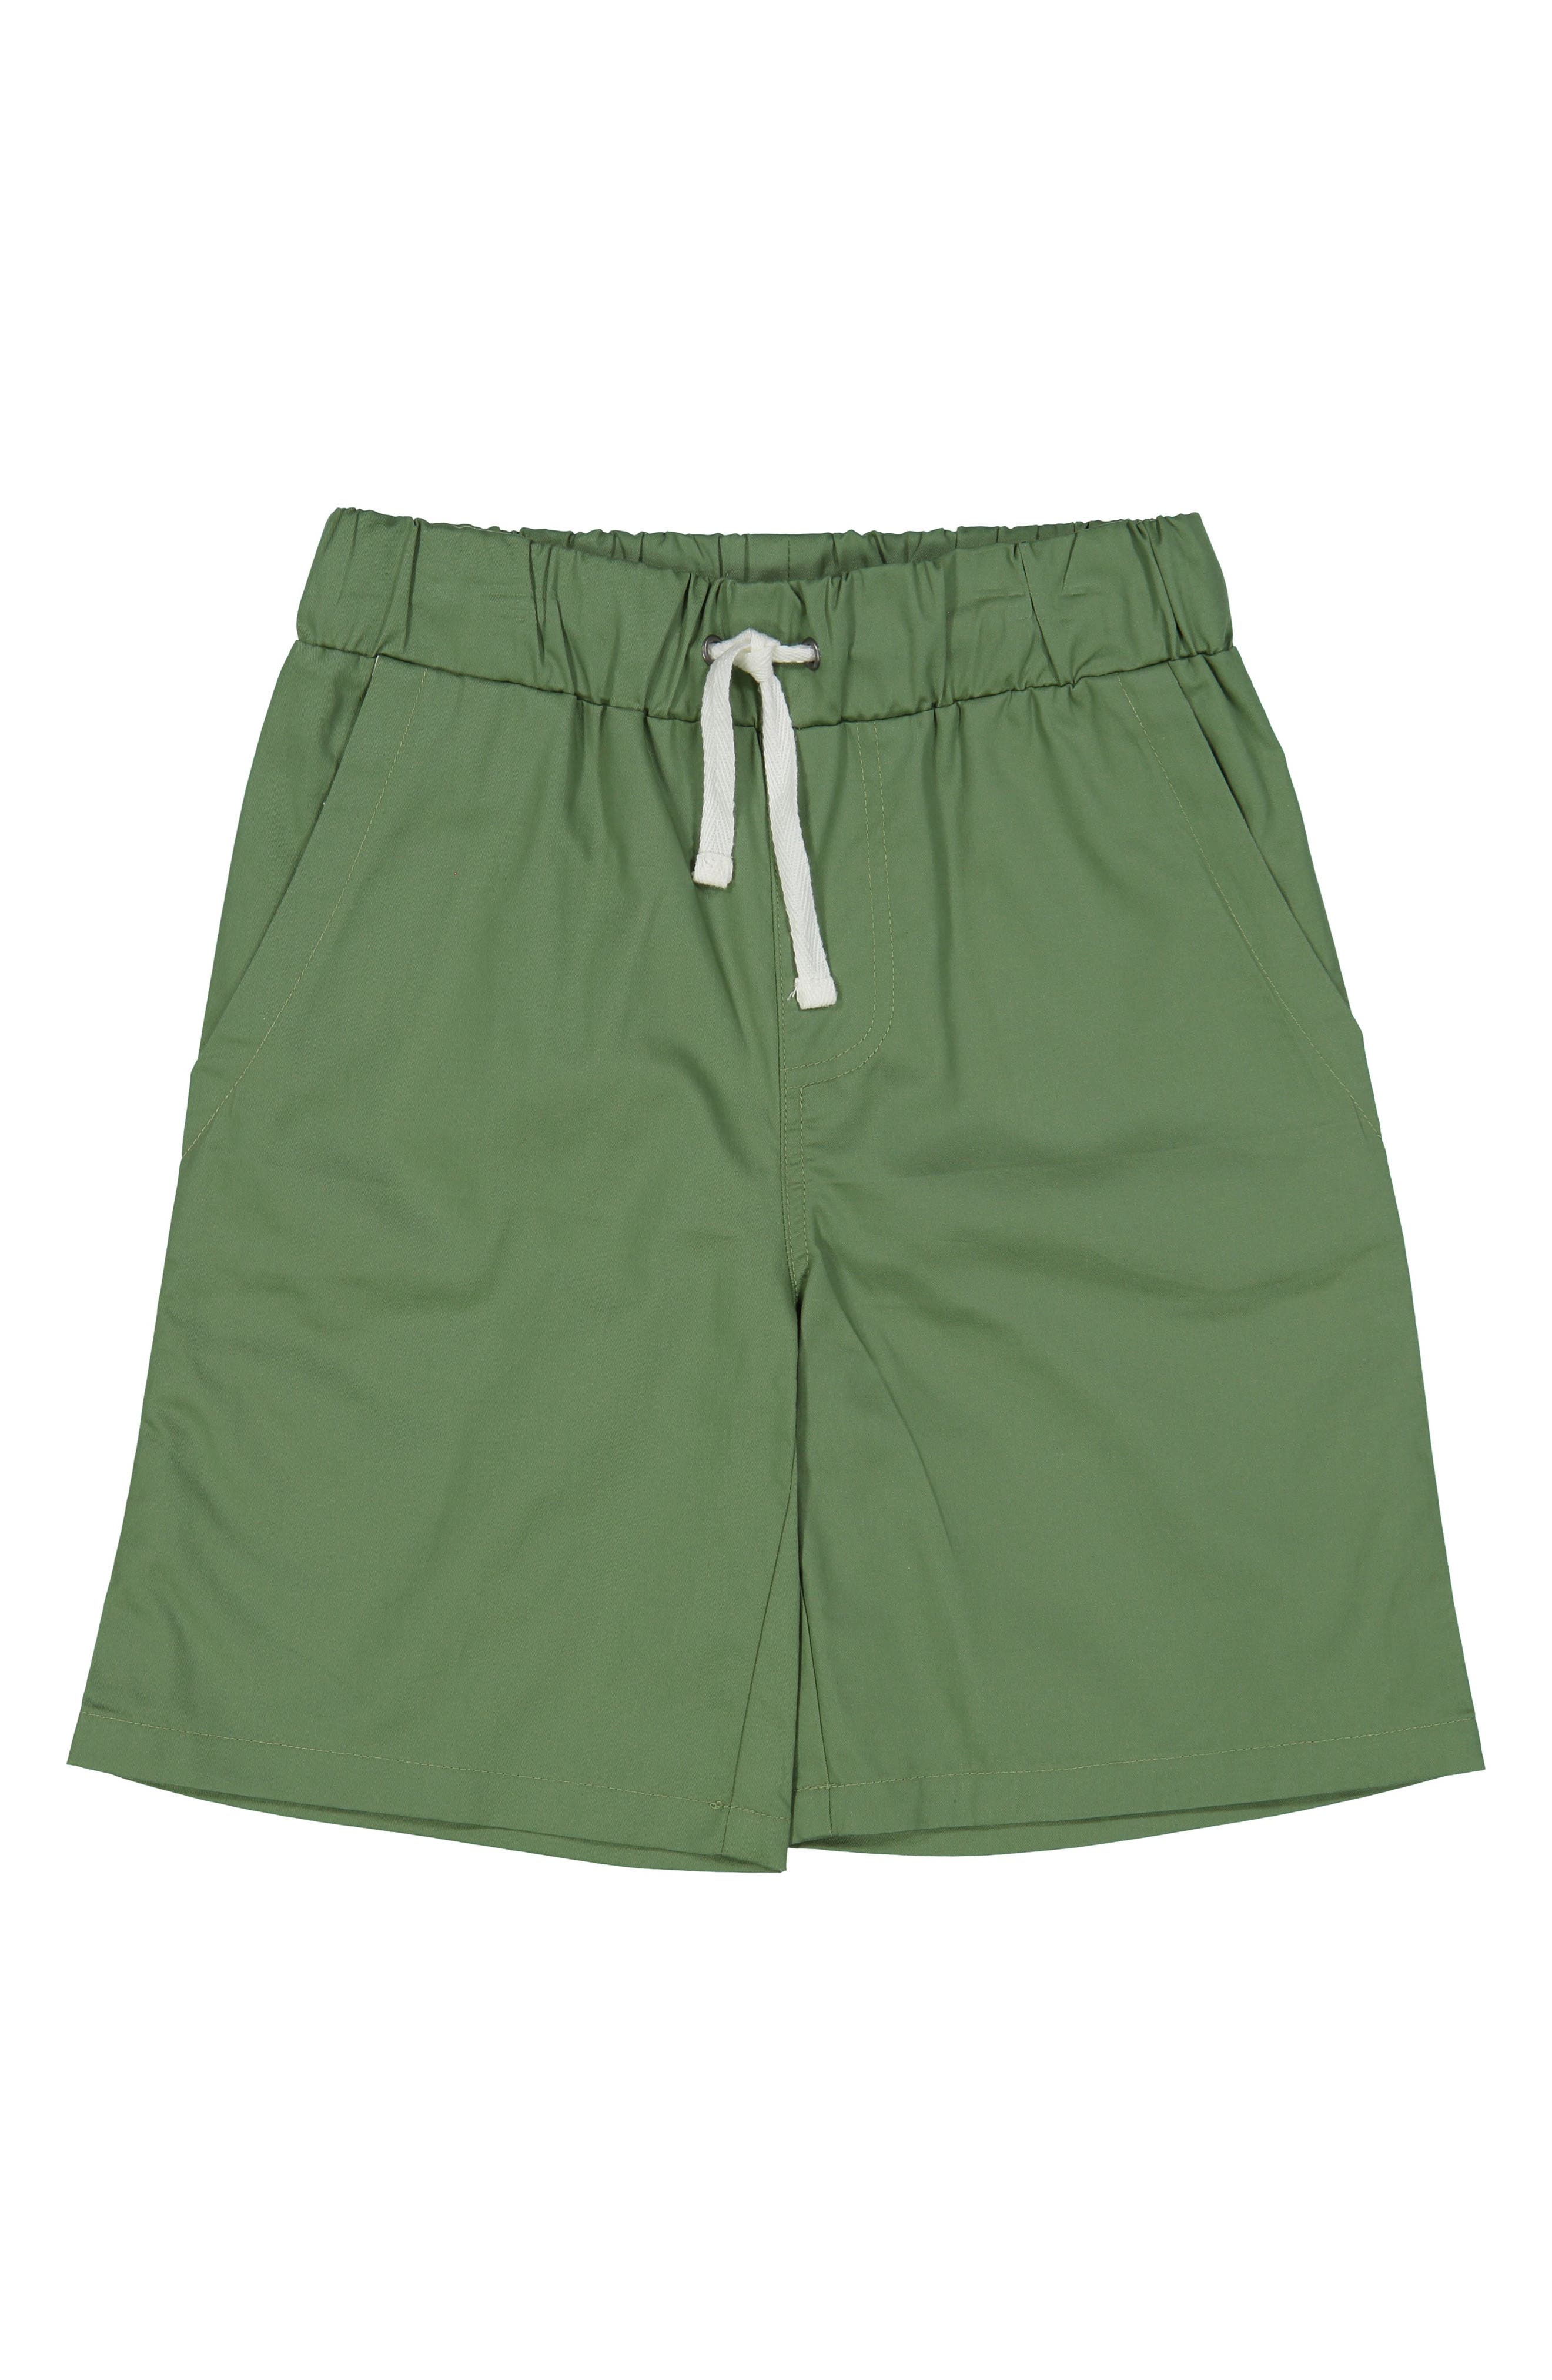 Moss Pull-On Shorts,                         Main,                         color, Green